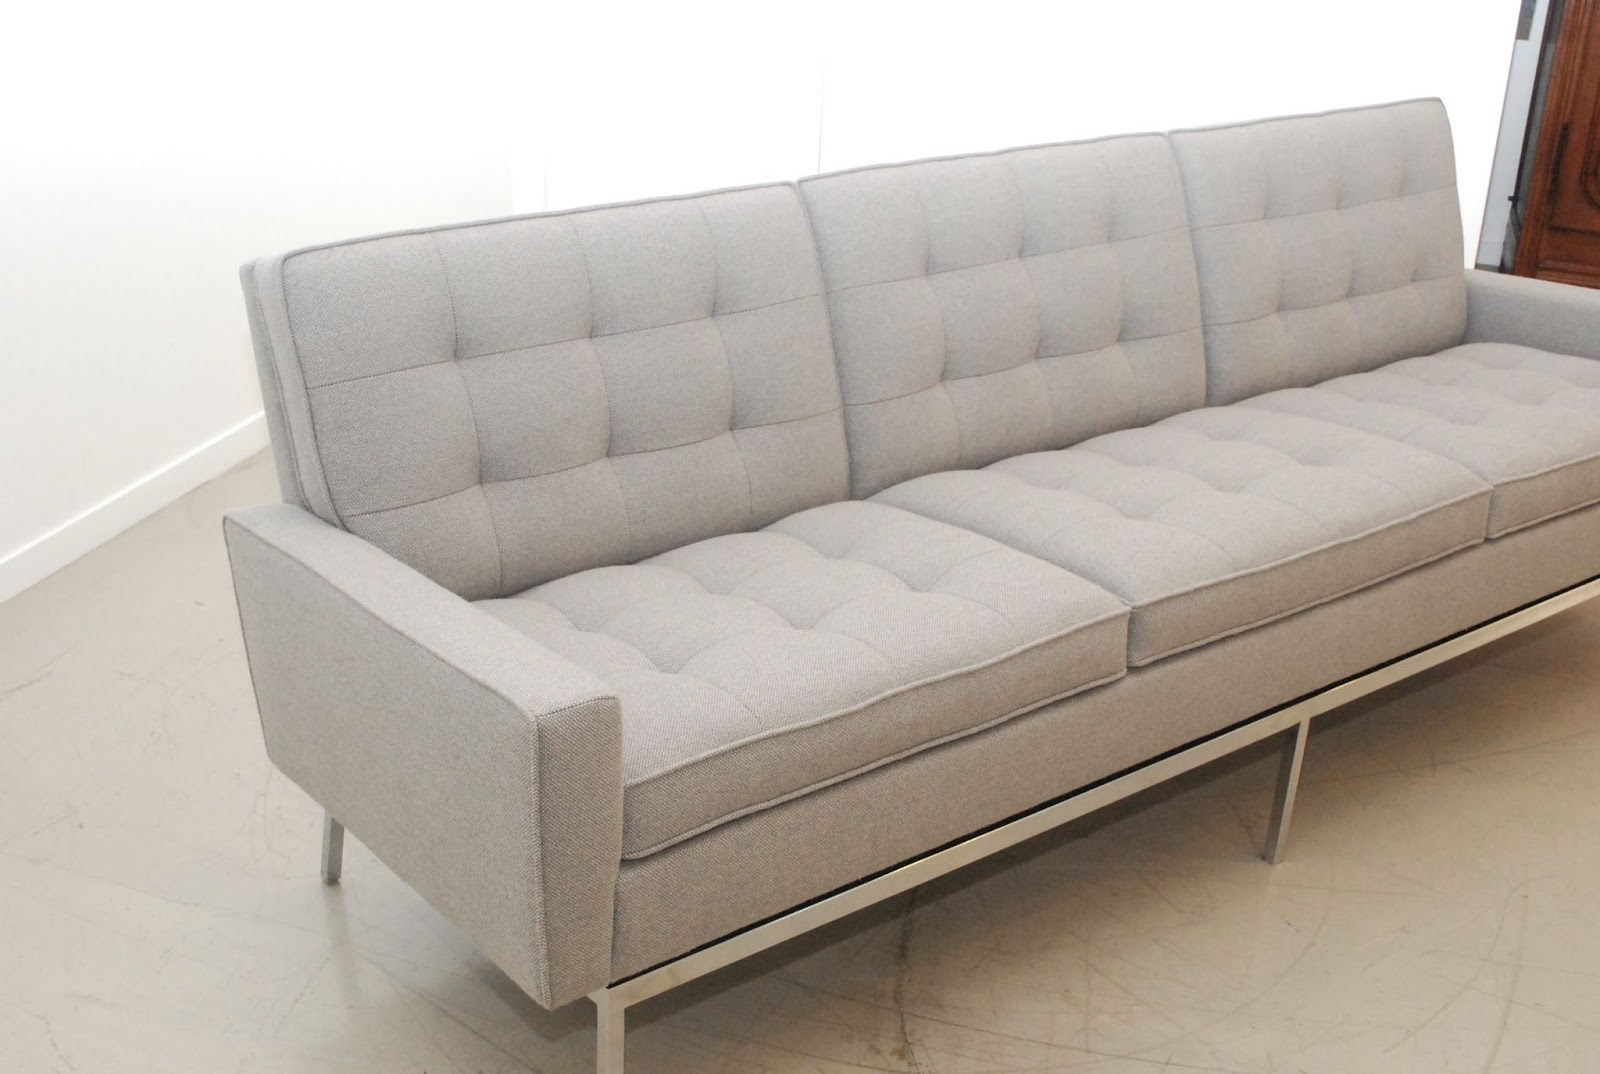 classic design Before & After Vintage Florence Knoll sofa